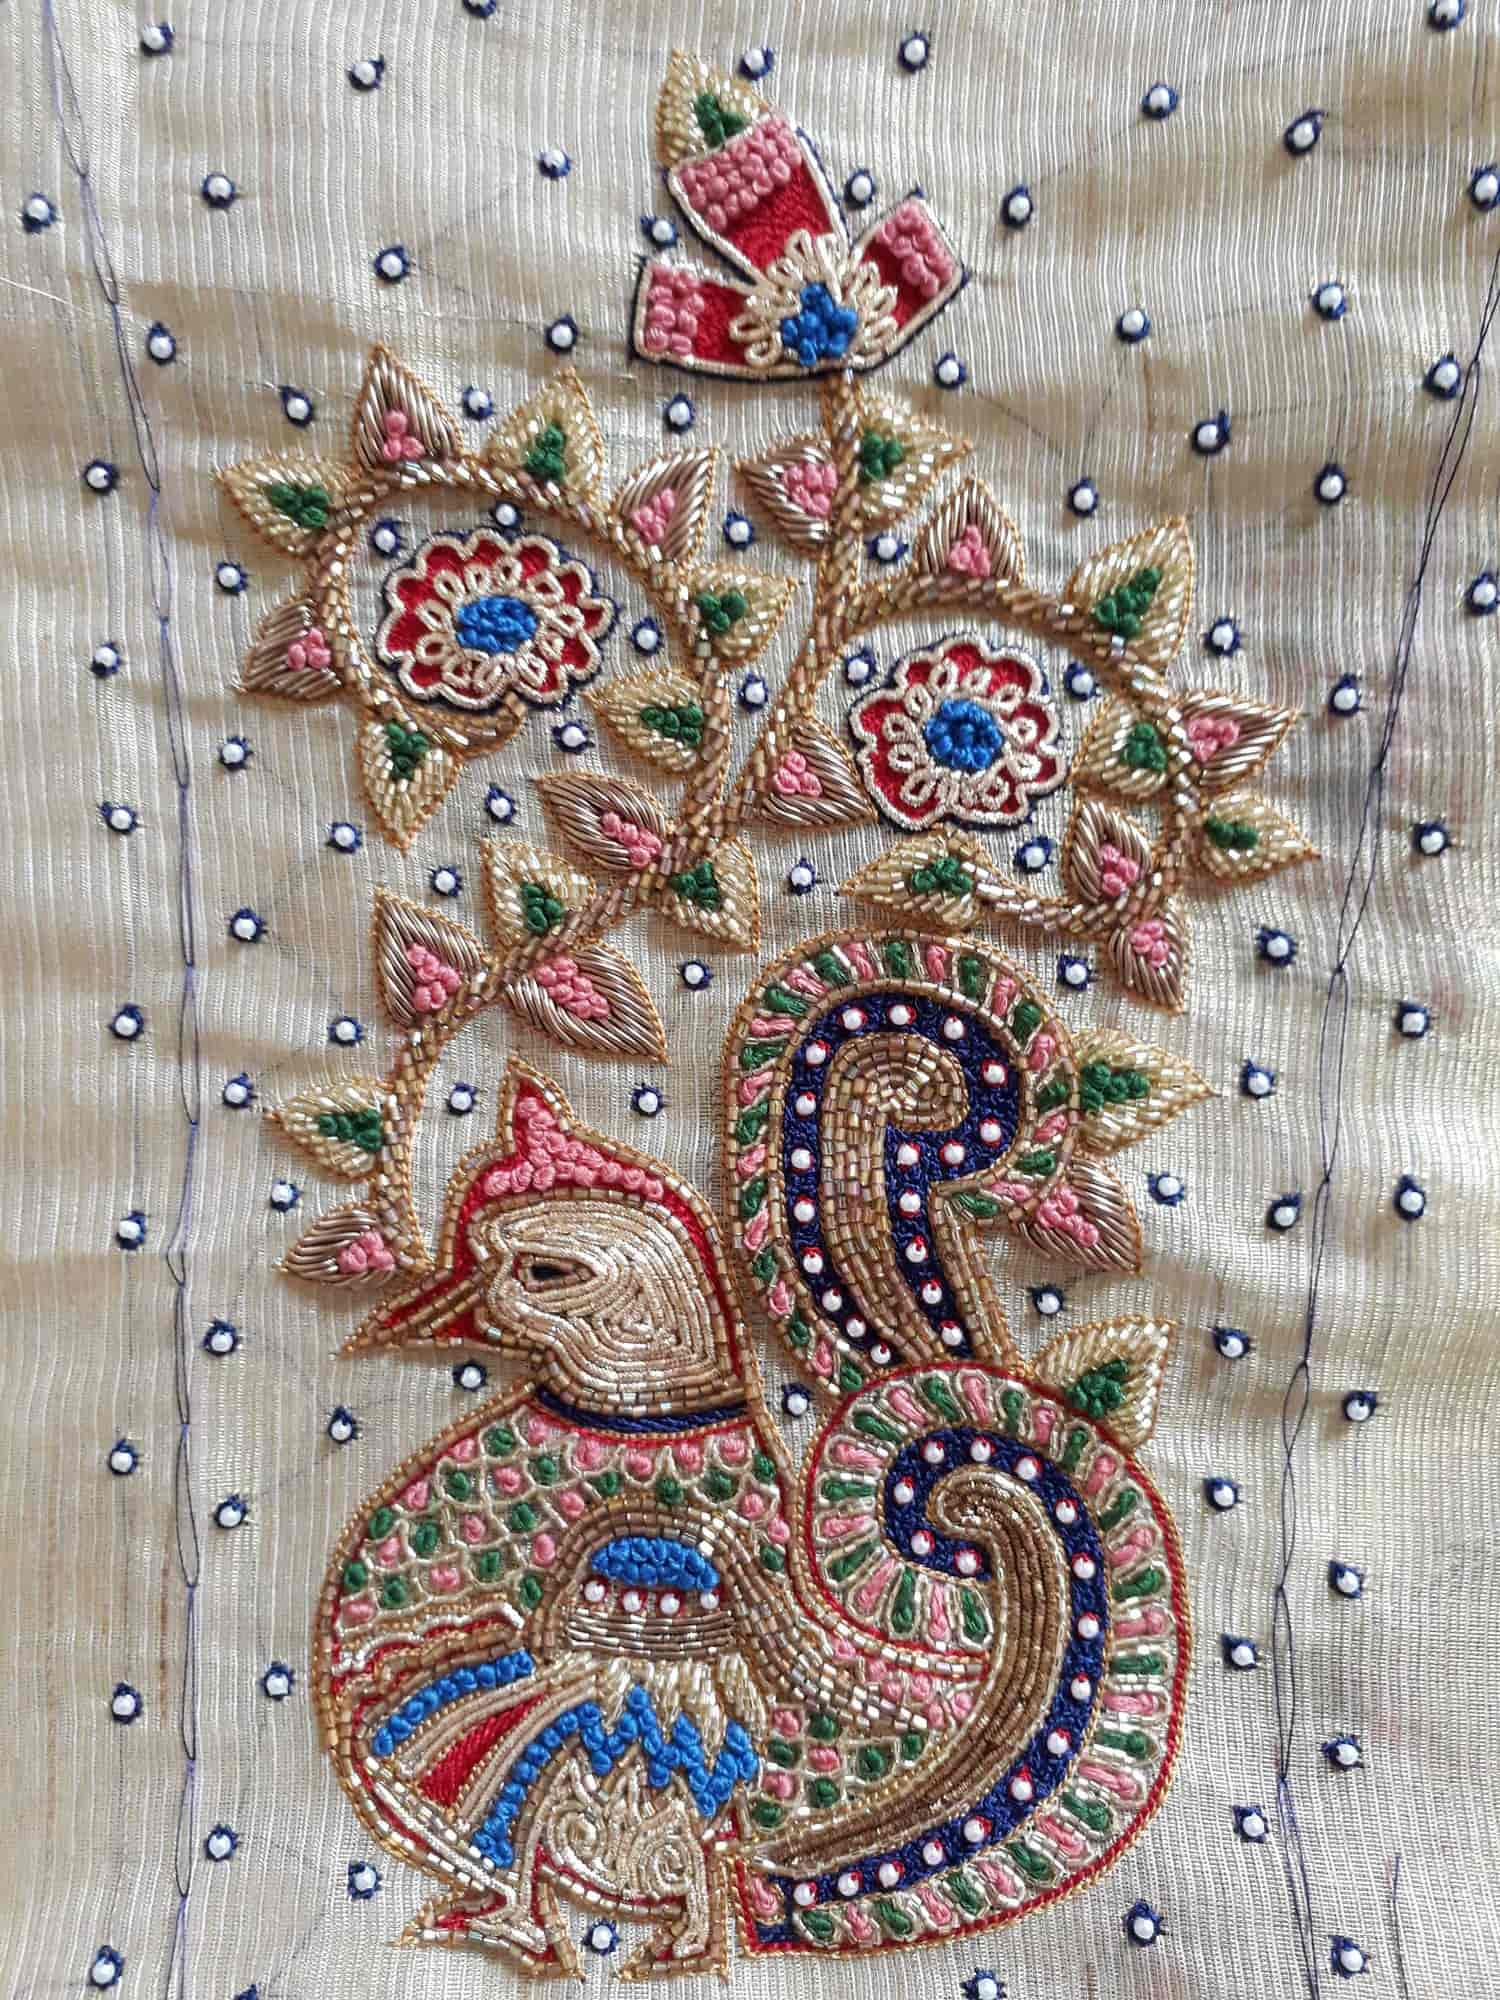 Asr hand embroidery govandi west hand work embroidery job works